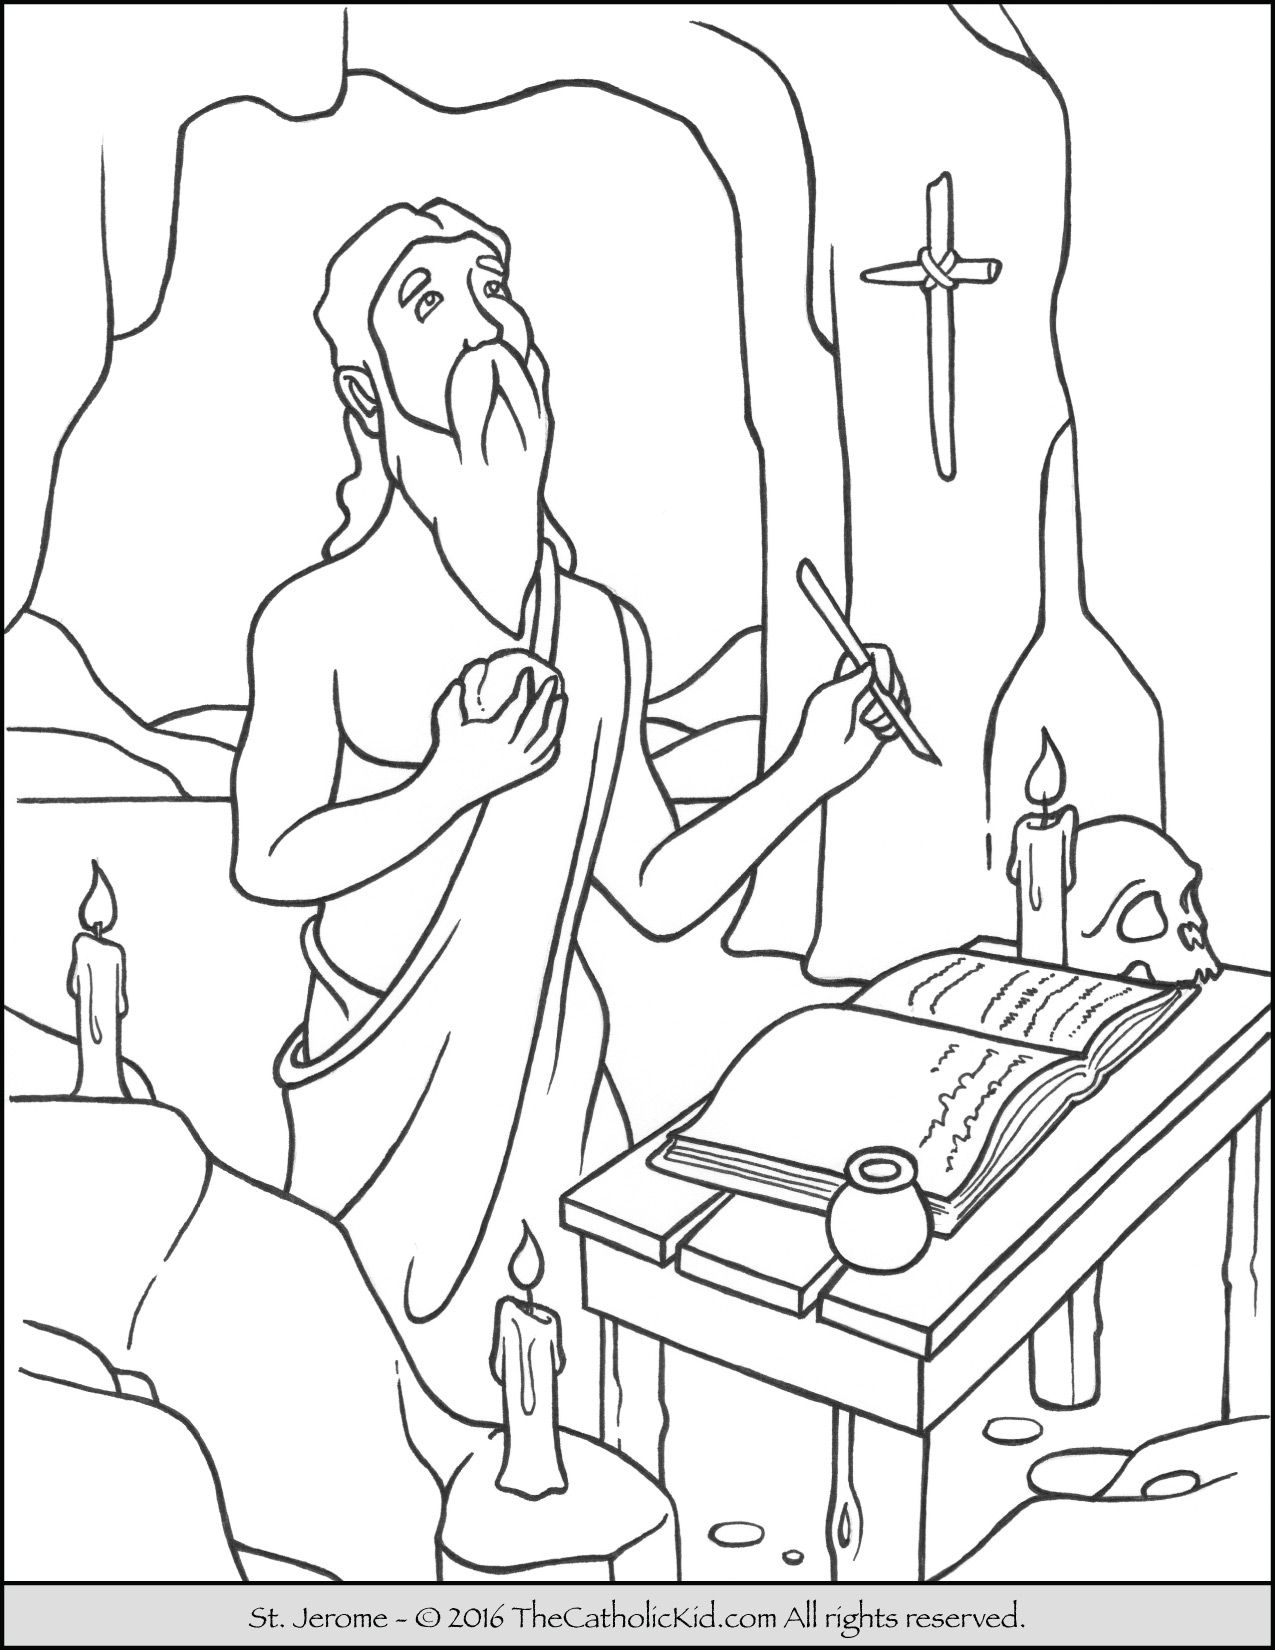 Coloring Page of Saint Jerome beating